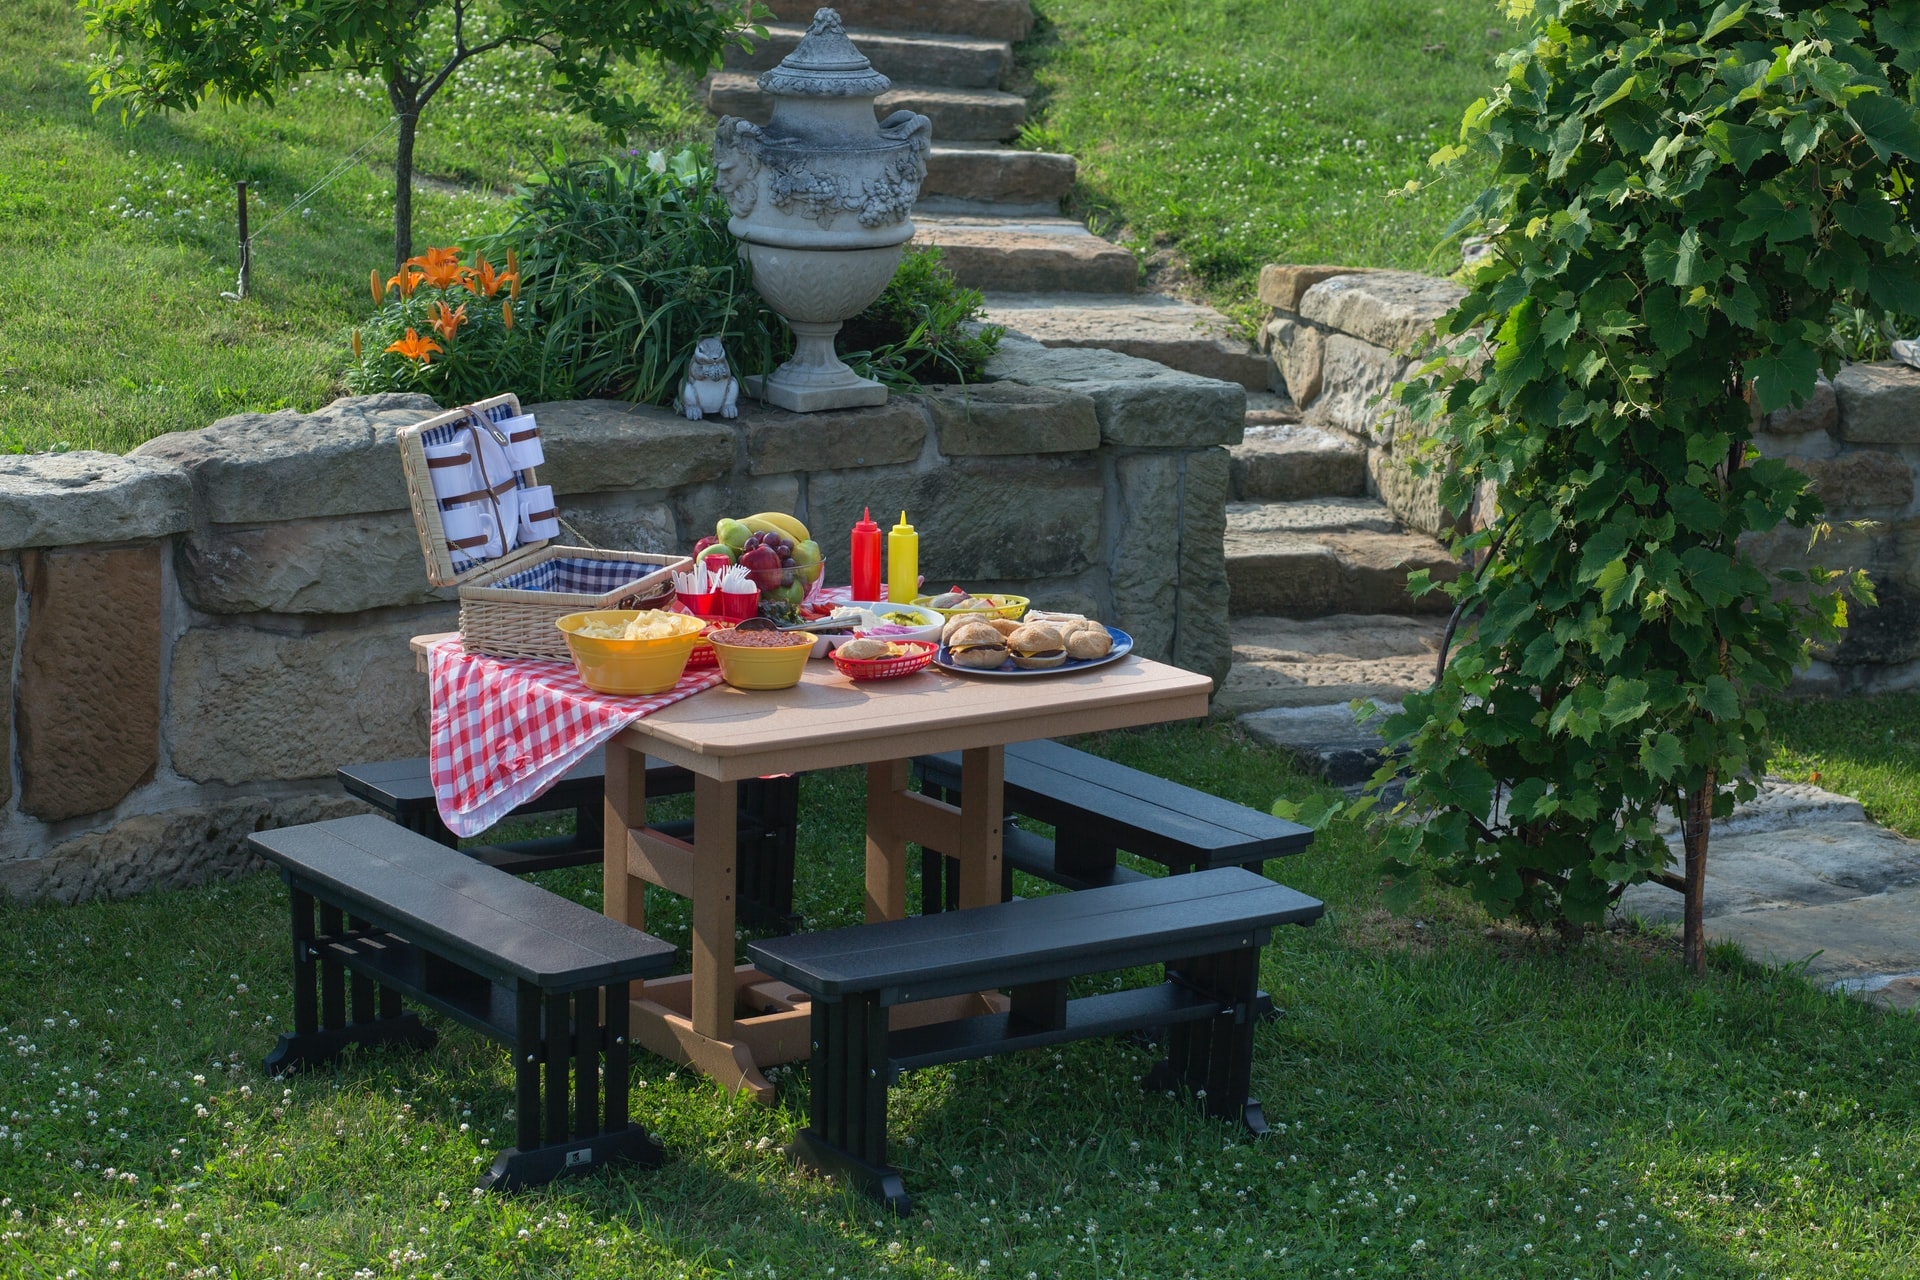 Small benches picnic set up in the backyard